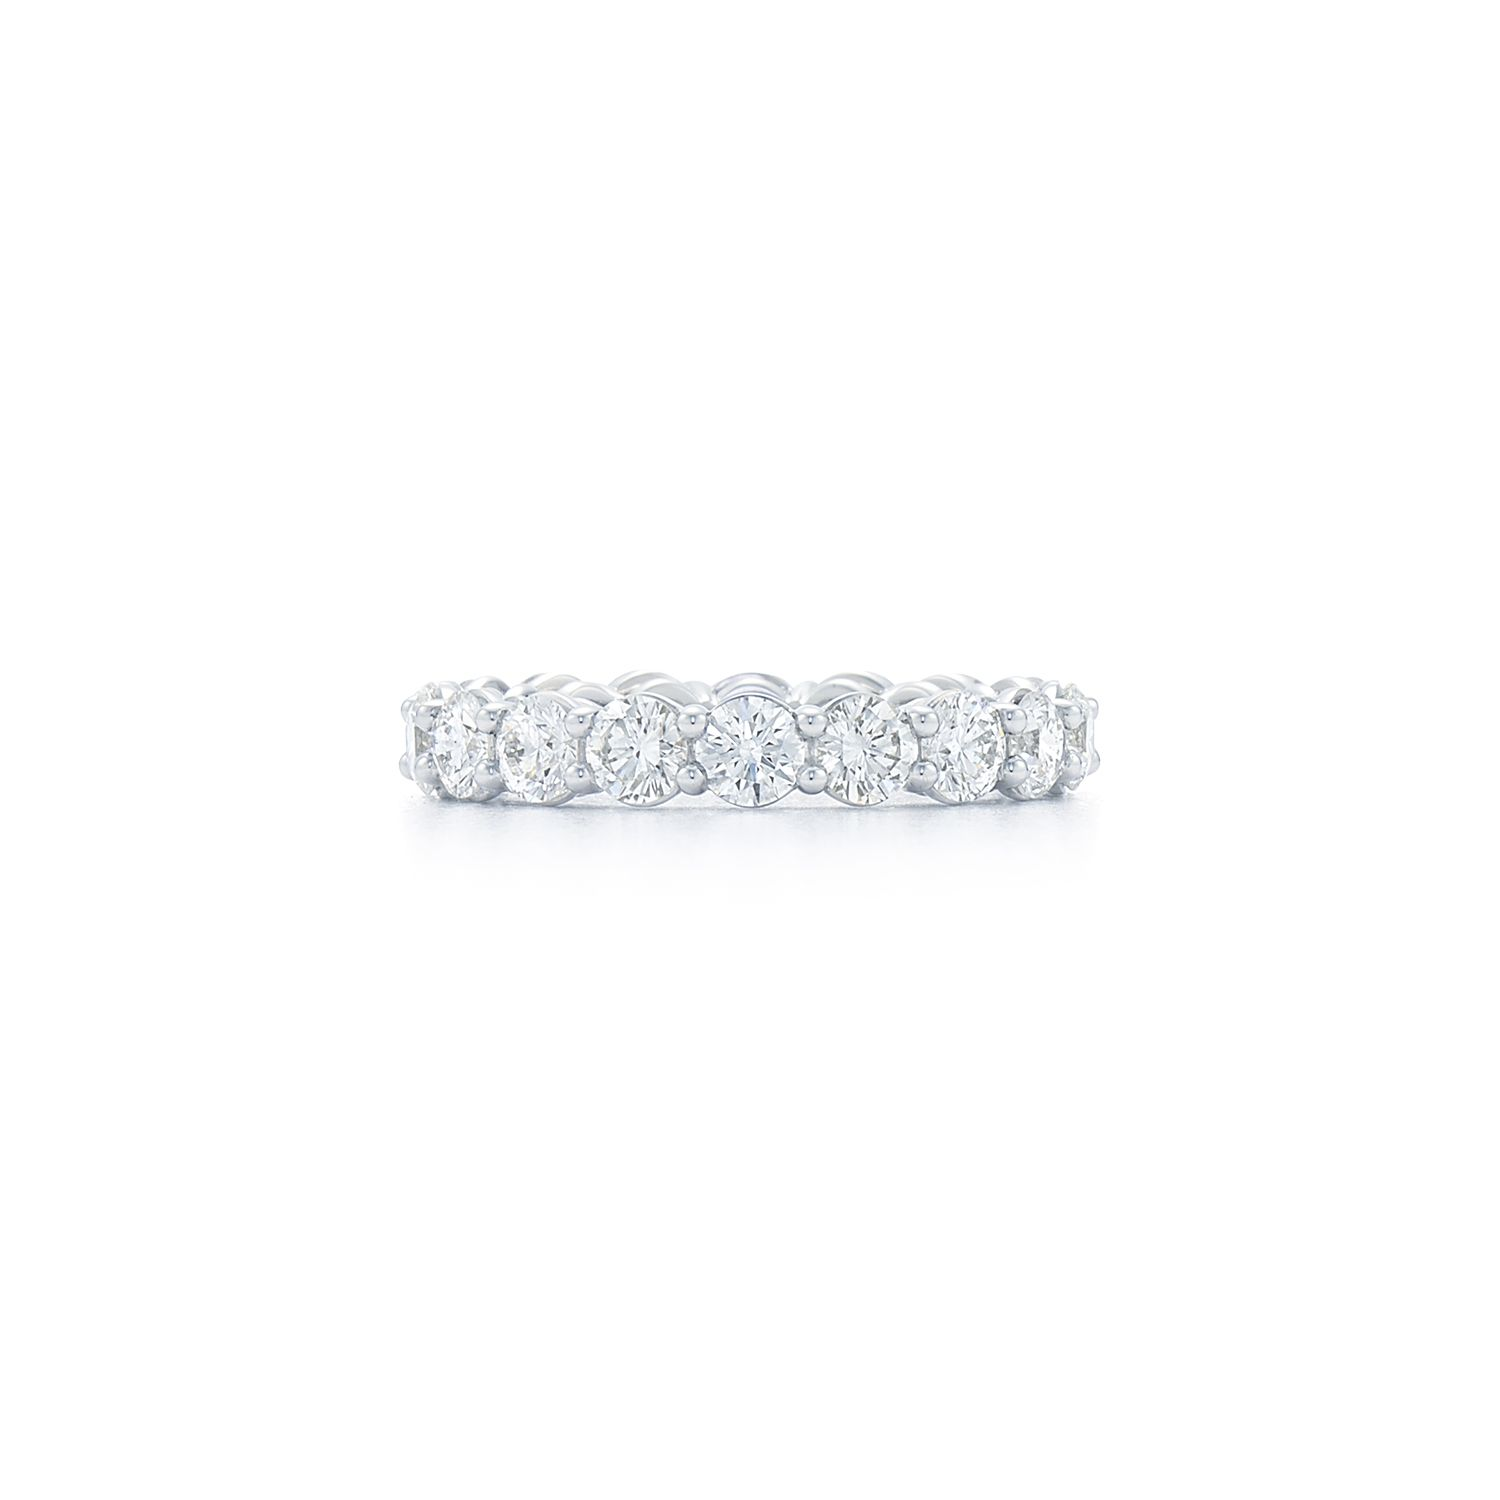 The Kwiat round diamond shared prong eternity band set in a